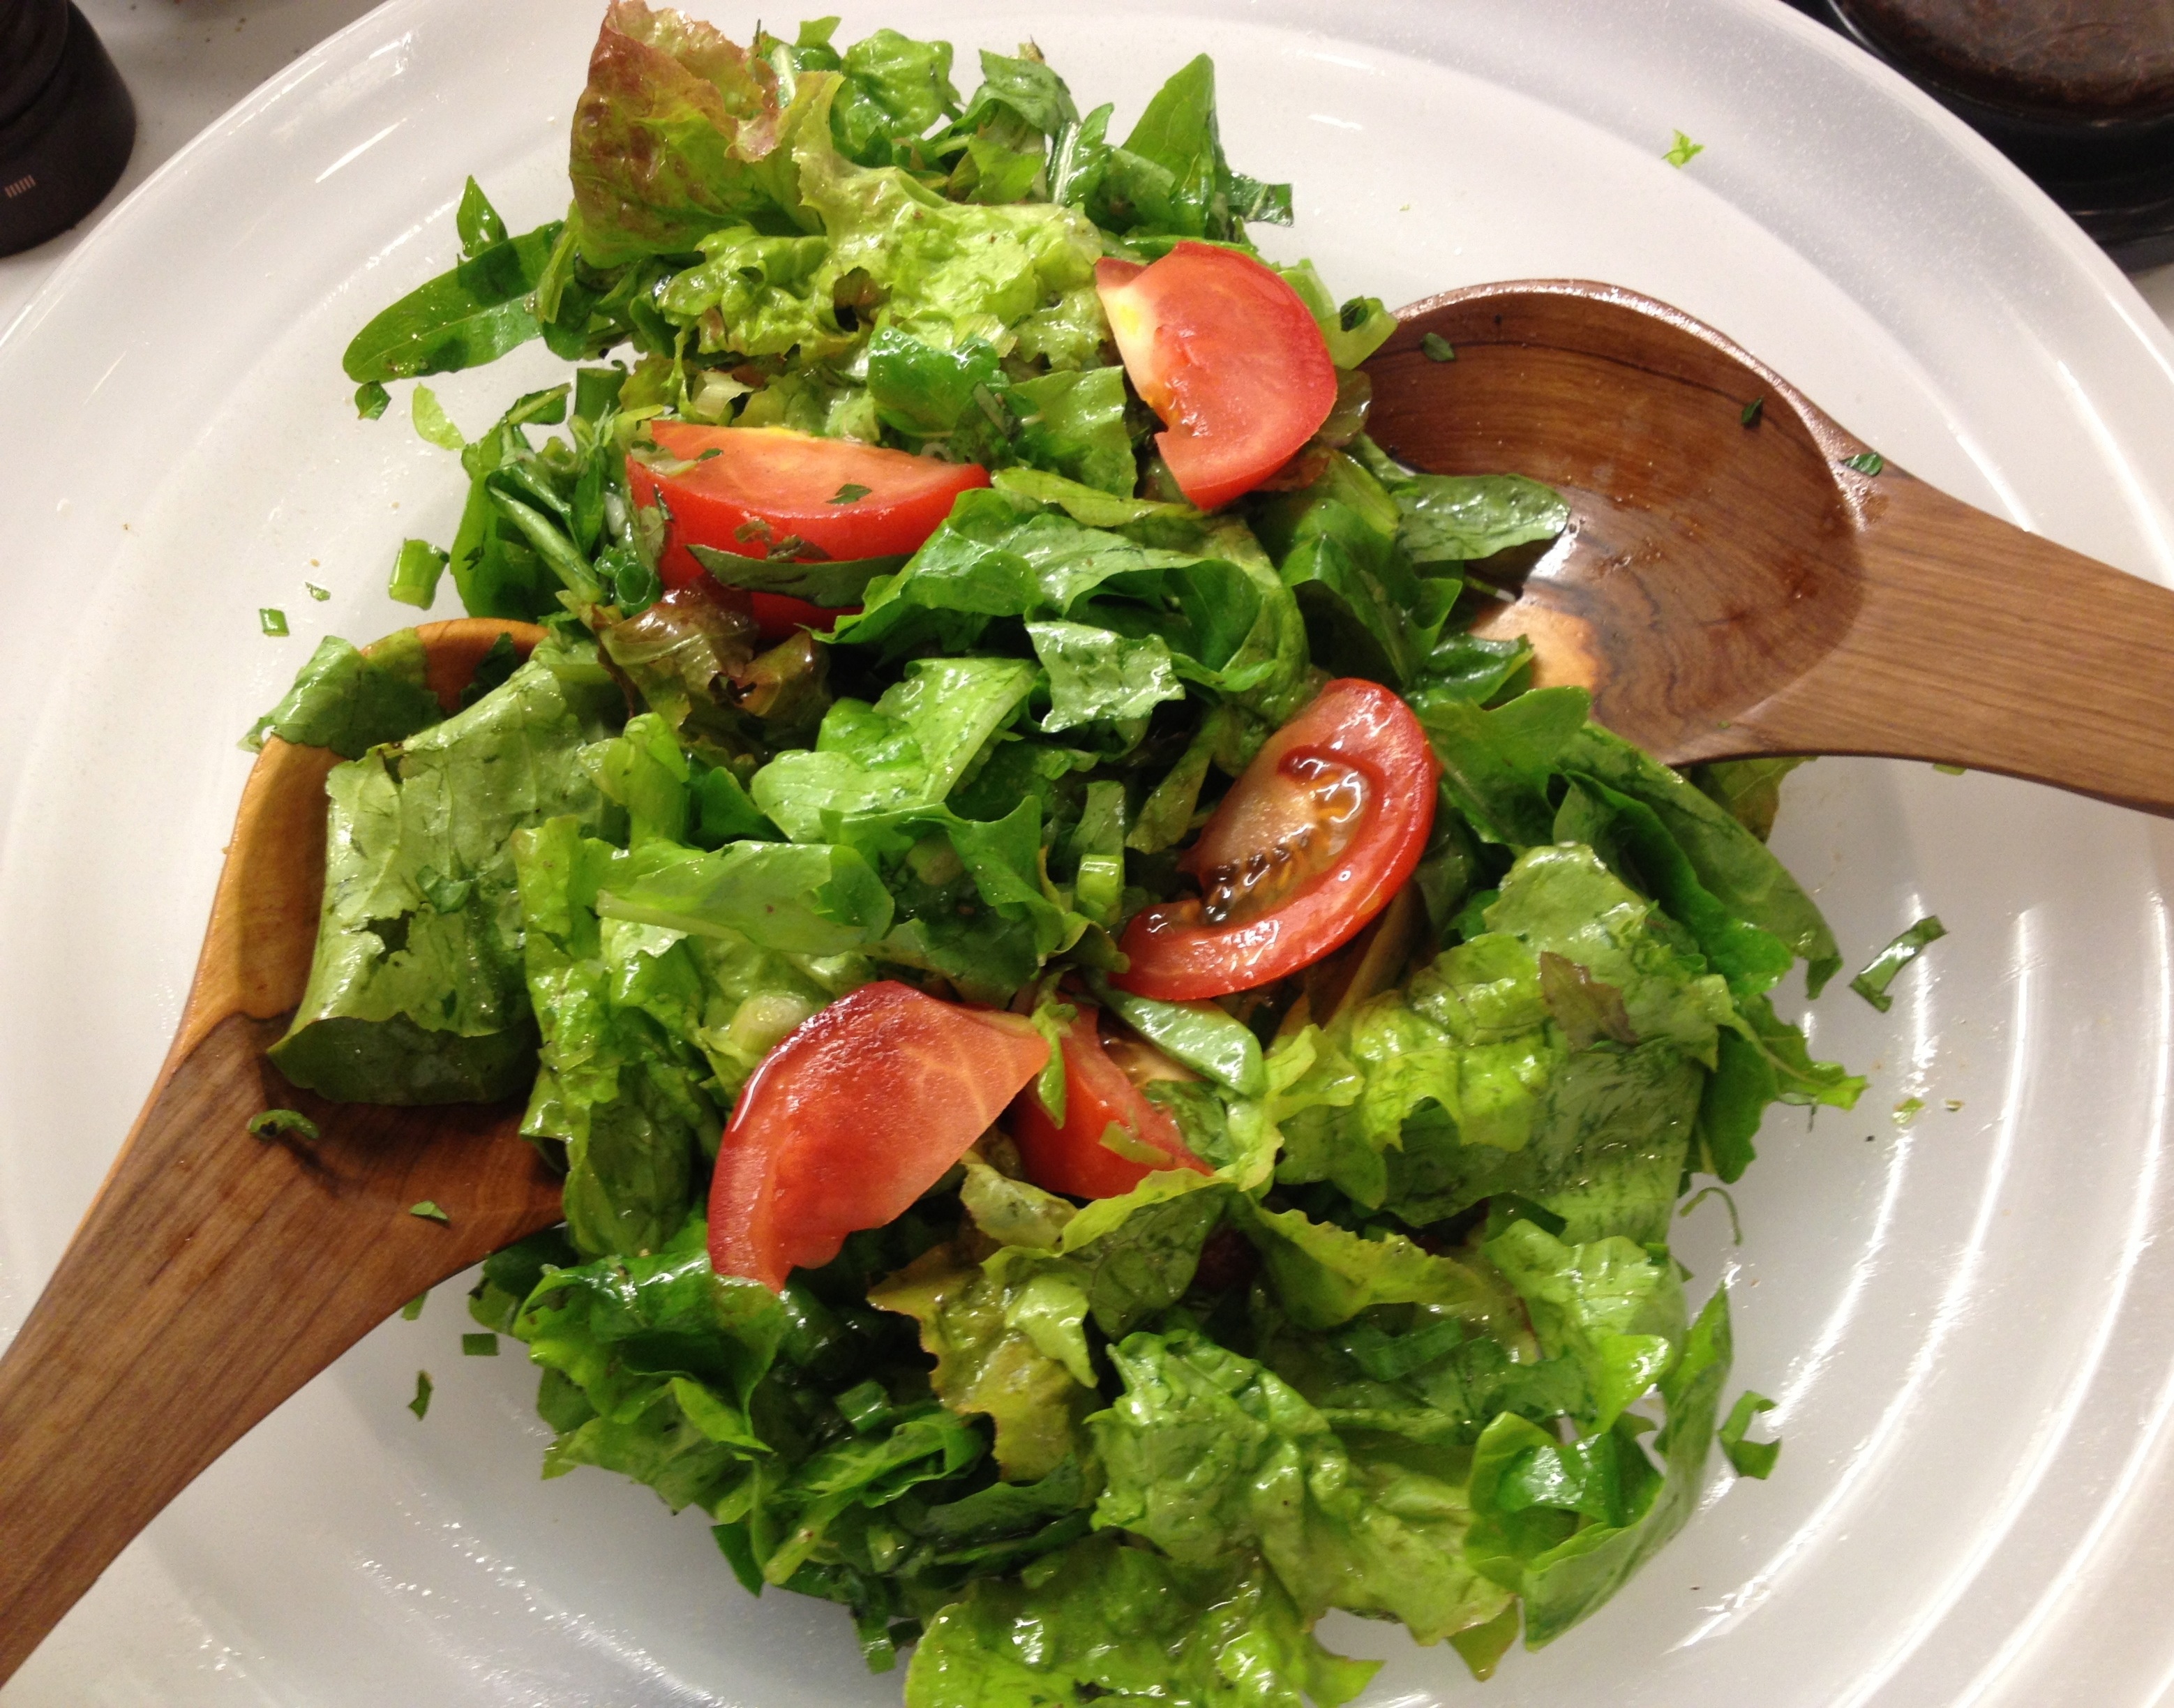 Mixed leaf lettuces with tomatoes in a serving bowl with African wooden serving spoons.